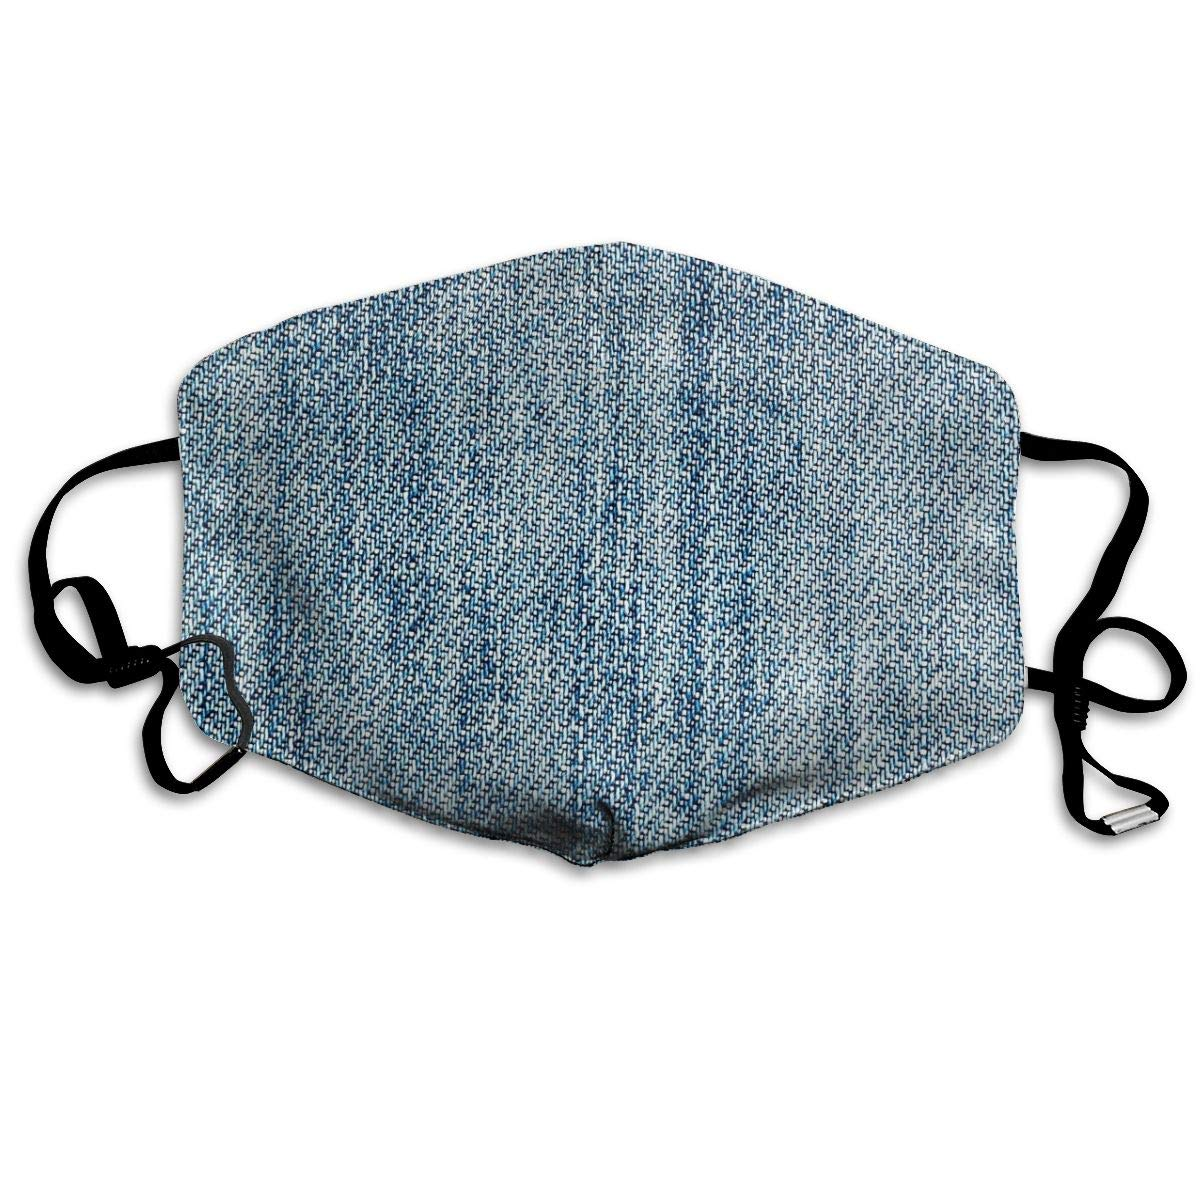 Mouth Mask For Daily Dress Up, Jeans Pattern Anti-dust Mouth-Muffle, Washable Reusable Holiday Half Face Masks For Mens And